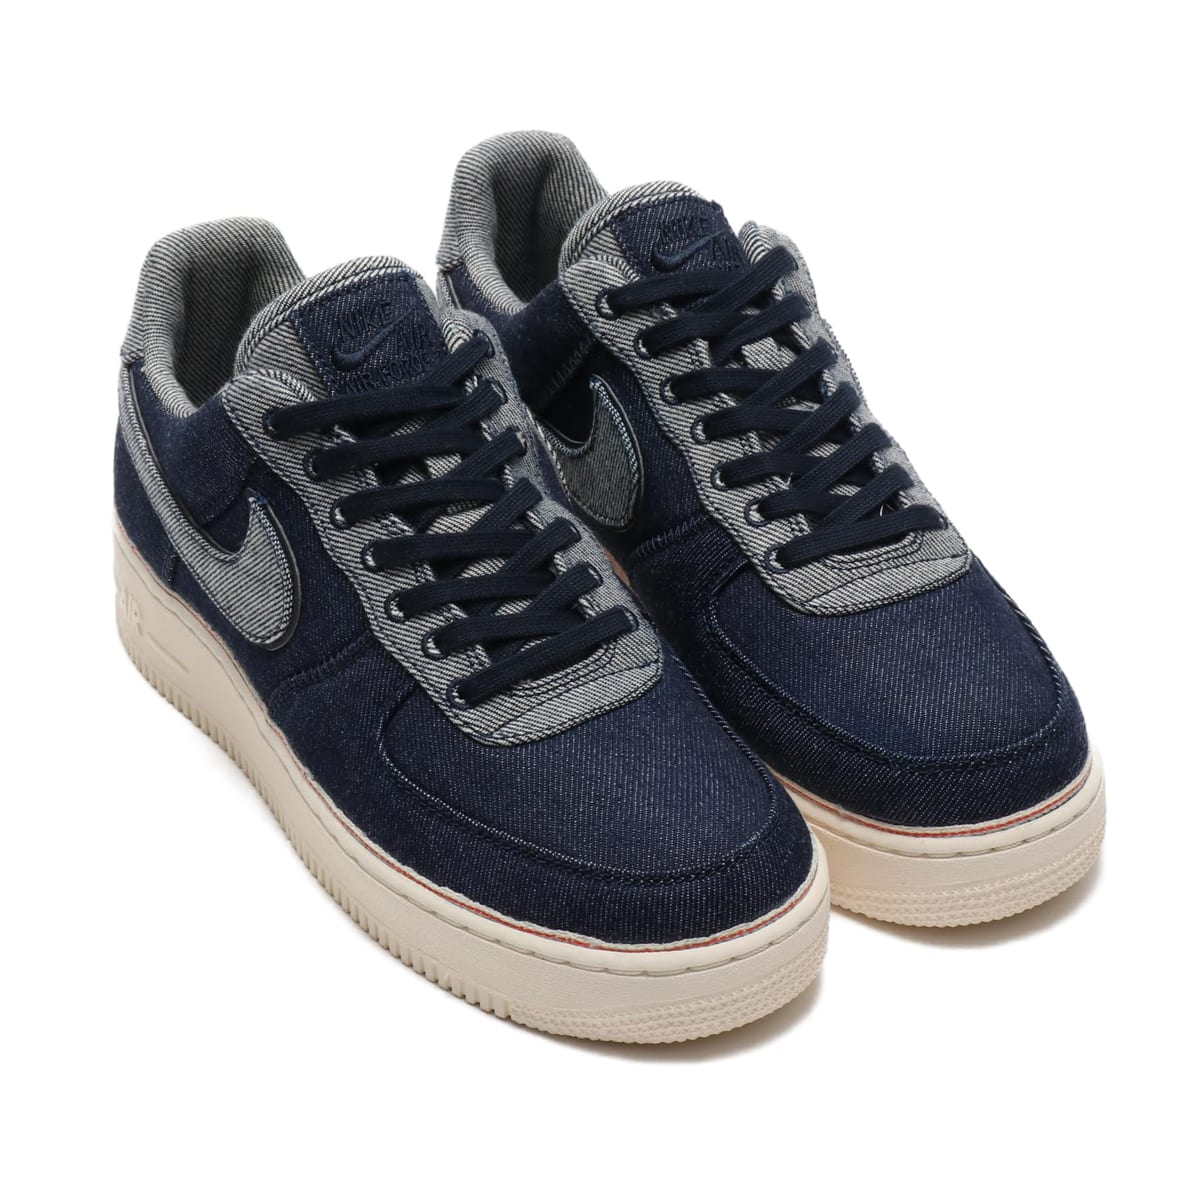 NIKE AIR FORCE 1 07 PRM RAW INDIGO /RAW INDIGO -DARK OBSIDIAN 19SU-S_photo_large